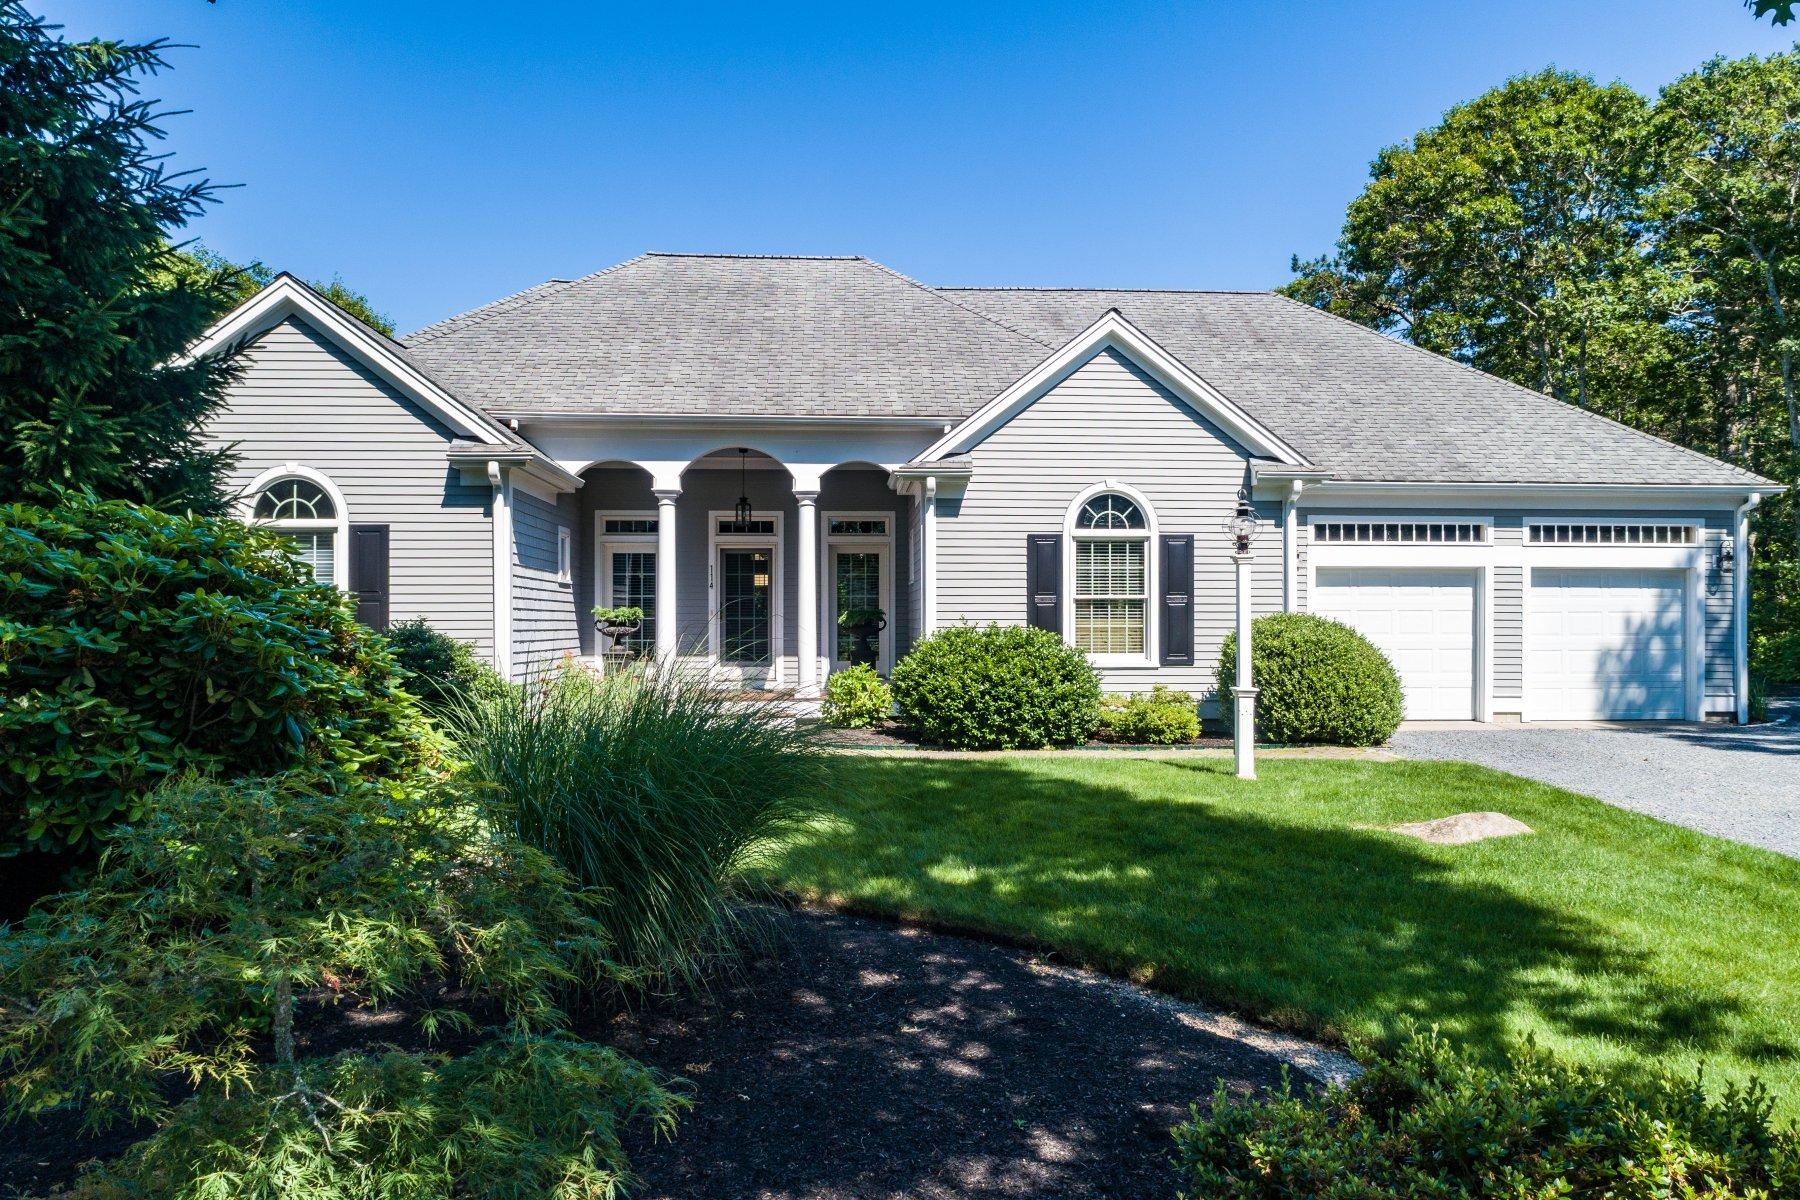 Single Family Homes for Active at 114 Captains Village Lane, Brewster, MA 114 Captains Village Lane Brewster, Massachusetts 02631 United States